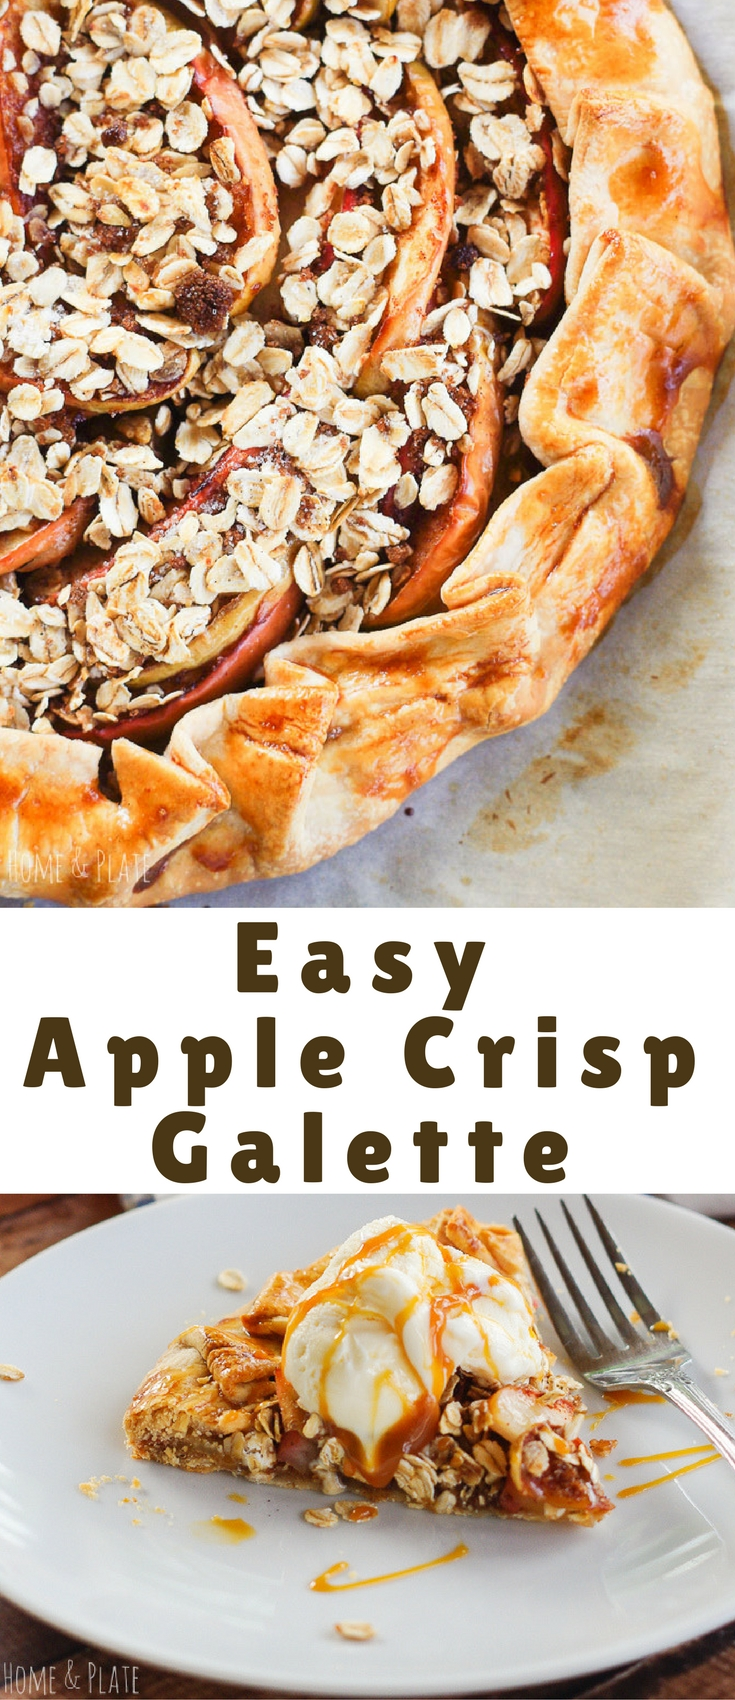 As delicious as mom's apple pie but easier! This easy apple crisp galette is the ideal fall dessert.